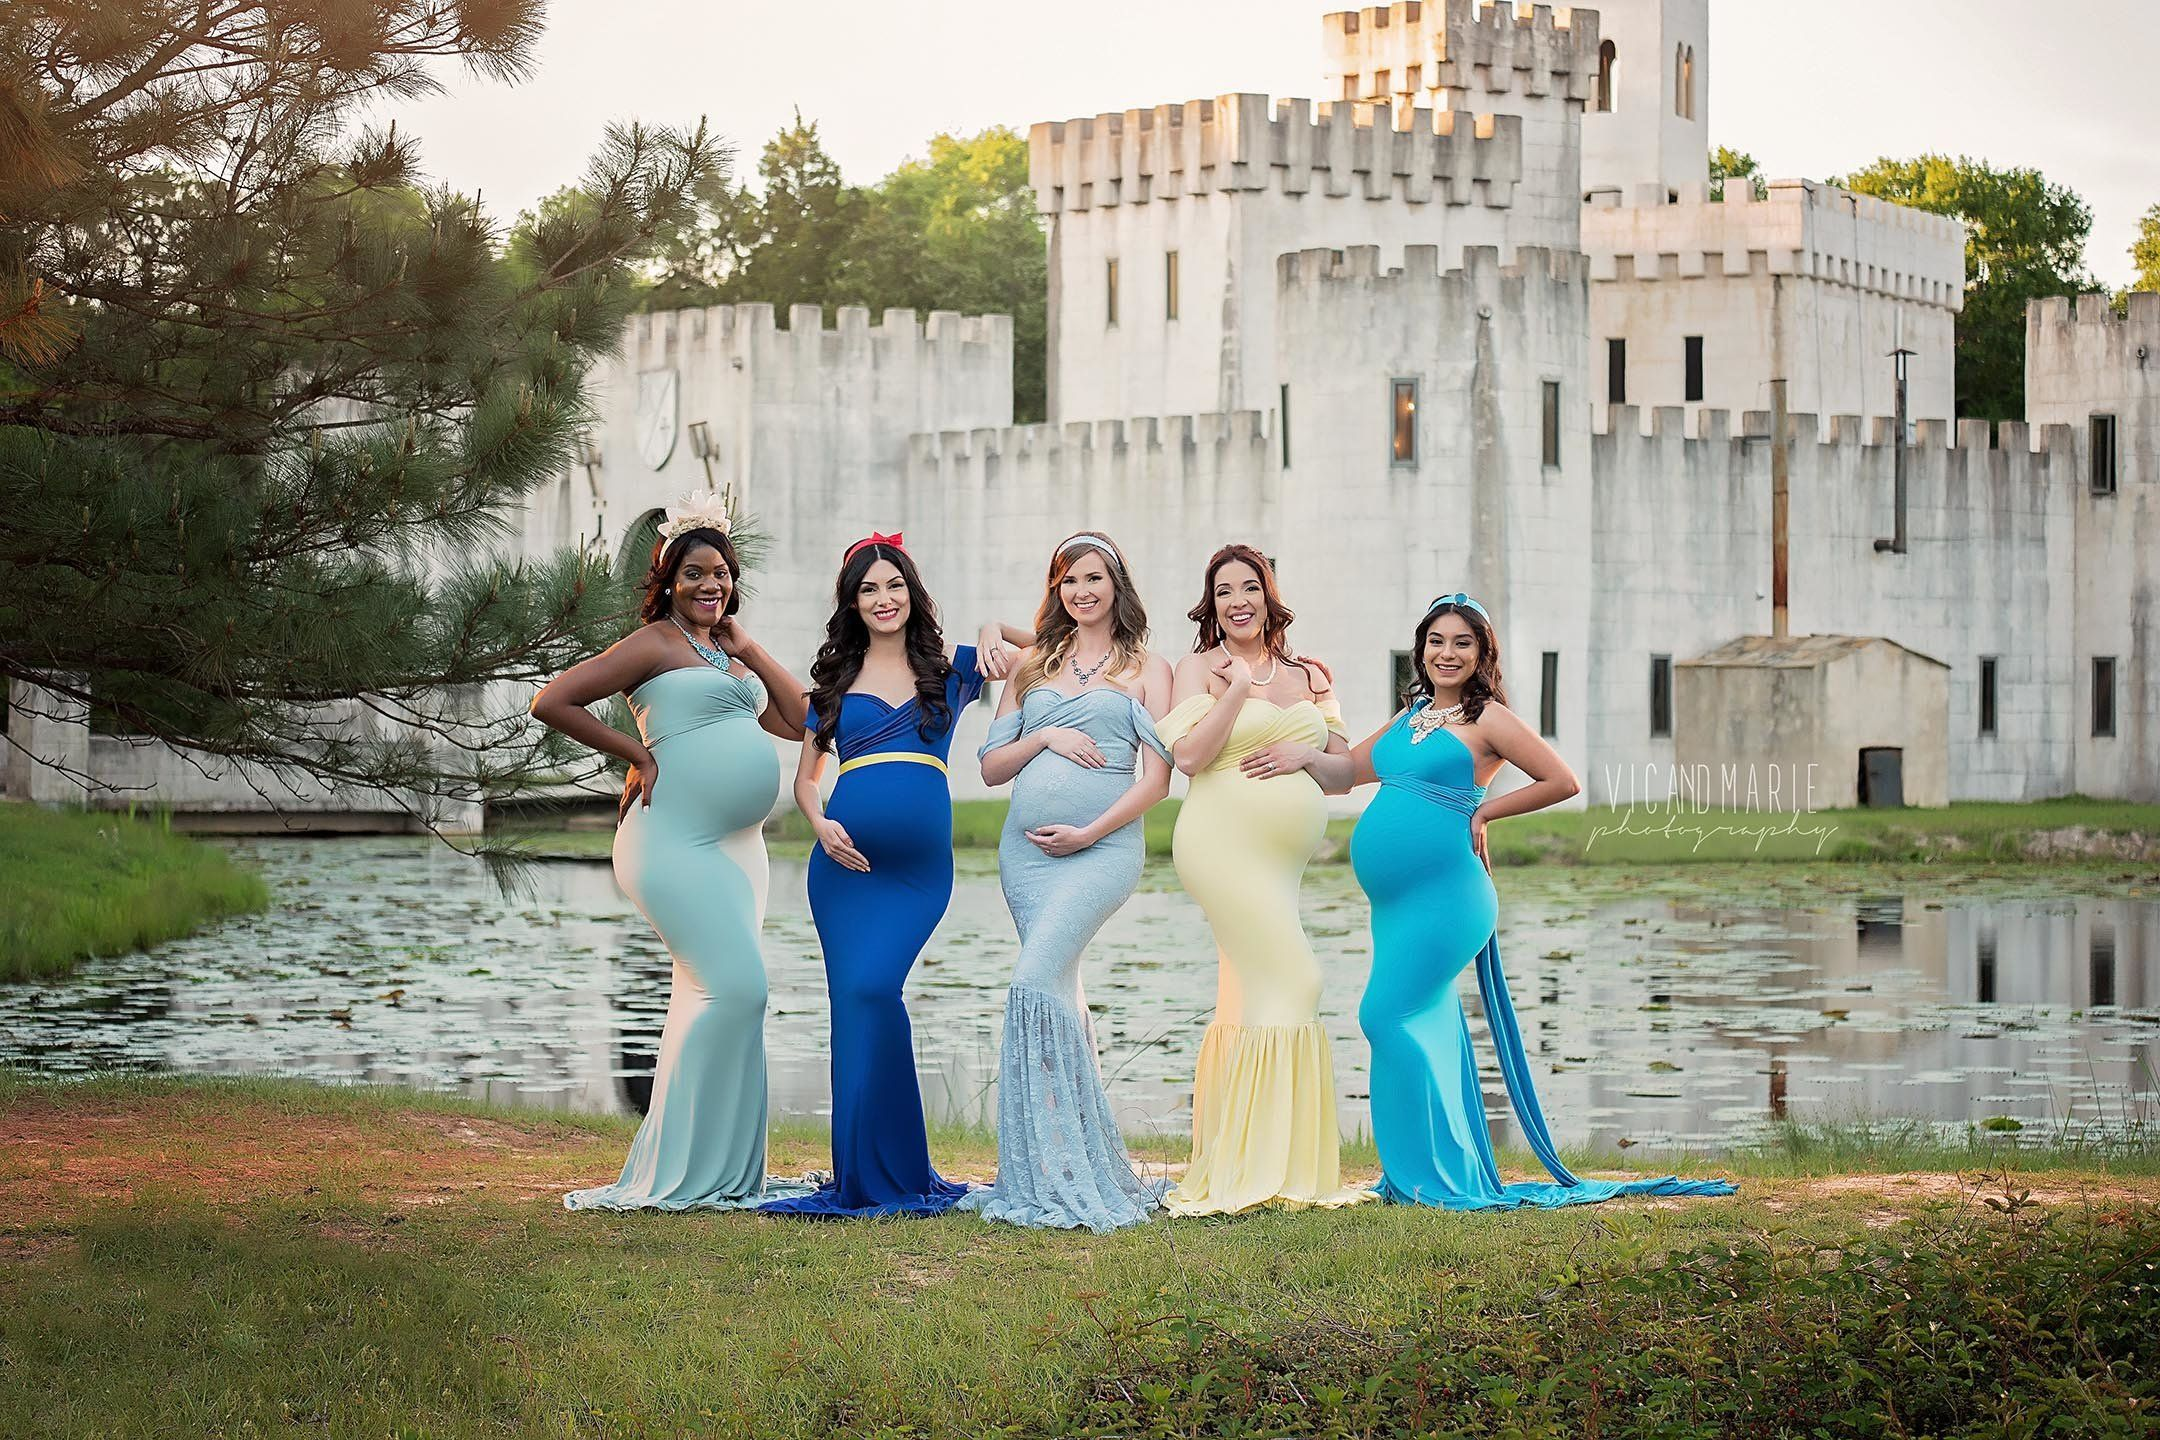 Victor and Marie Luna, a husband-wife photography team in Texas, put together a Disney princess-themed...